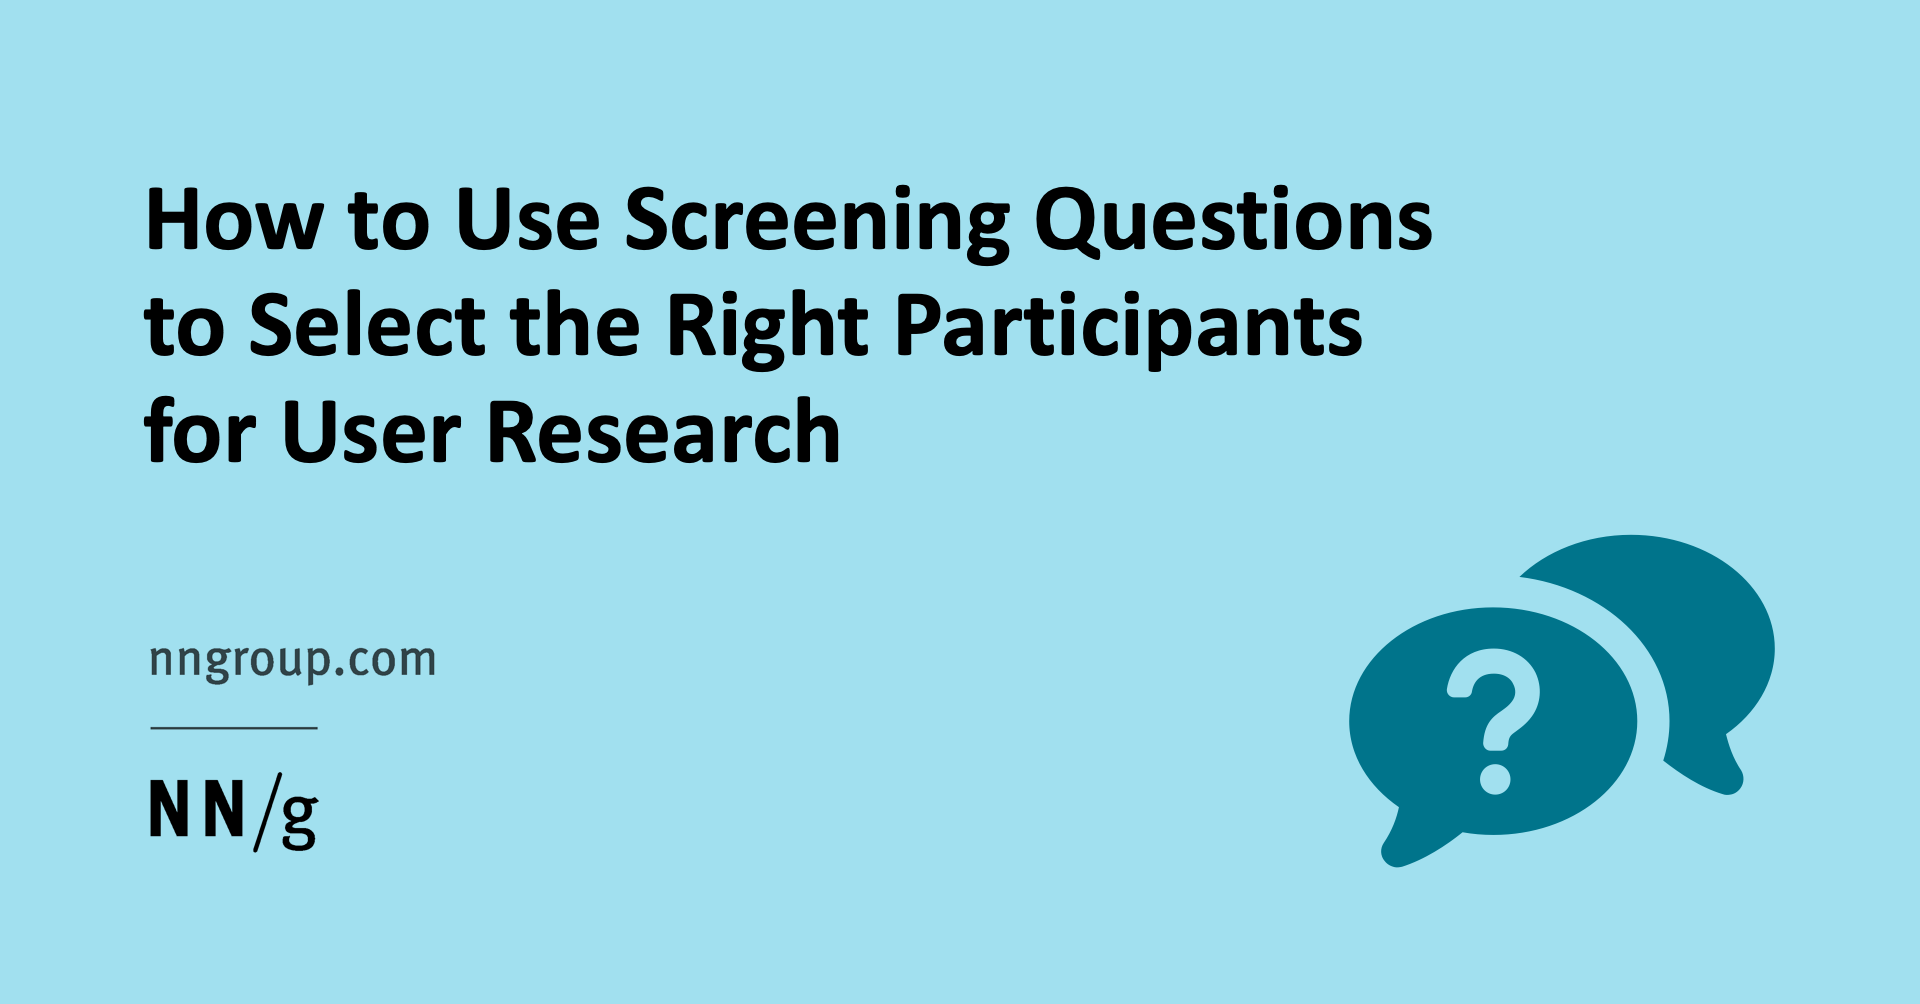 How to use Screening Questions to Select the Right Participants for User Research